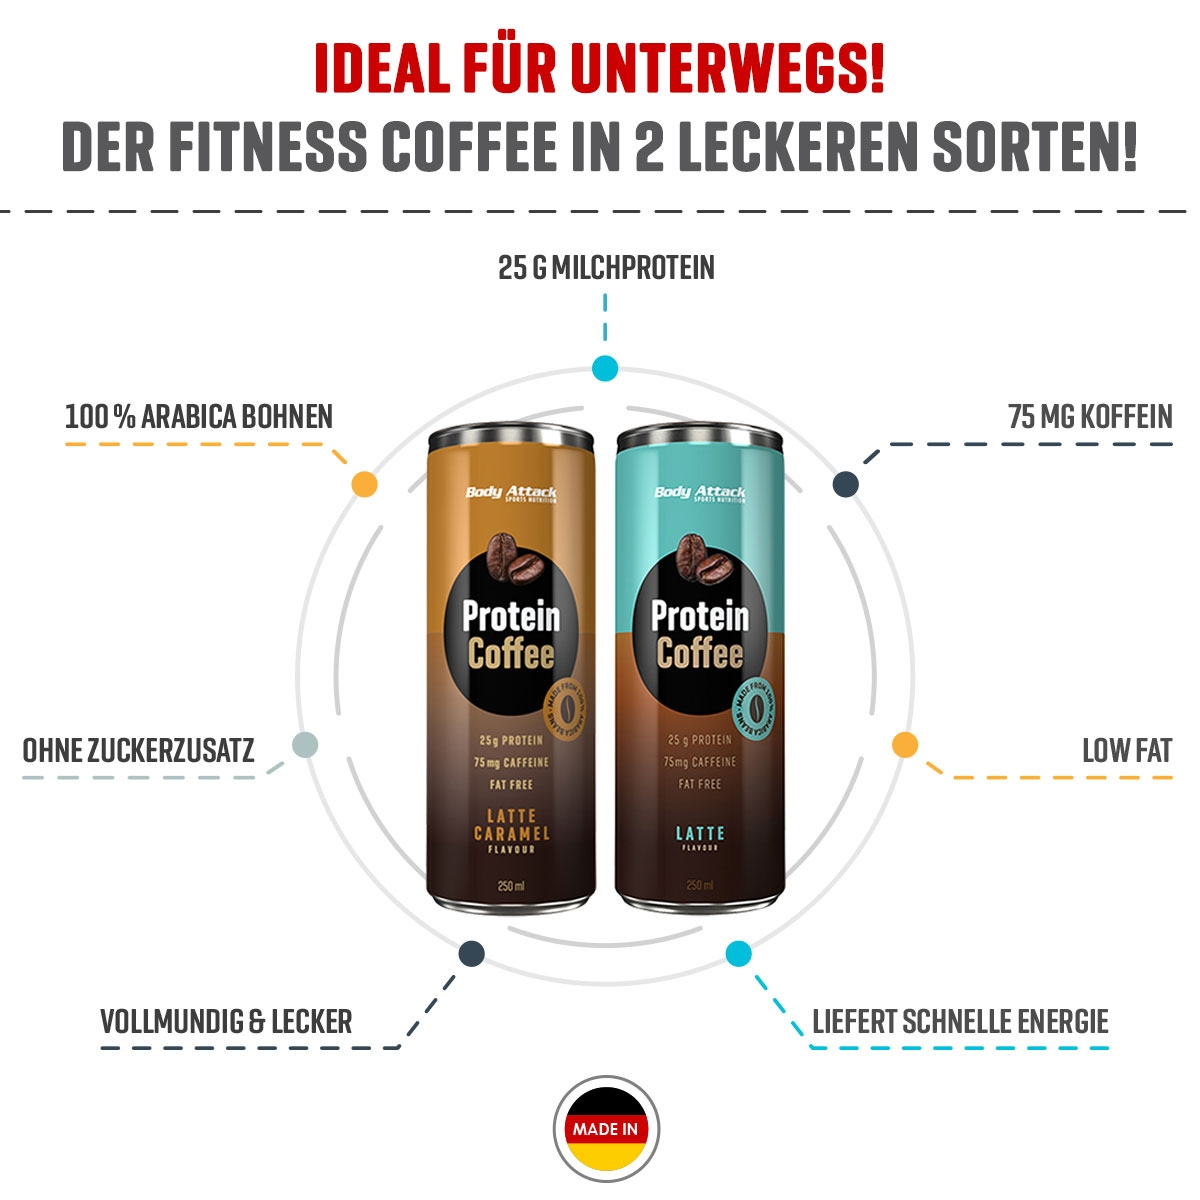 Protein Coffee von Body Attack